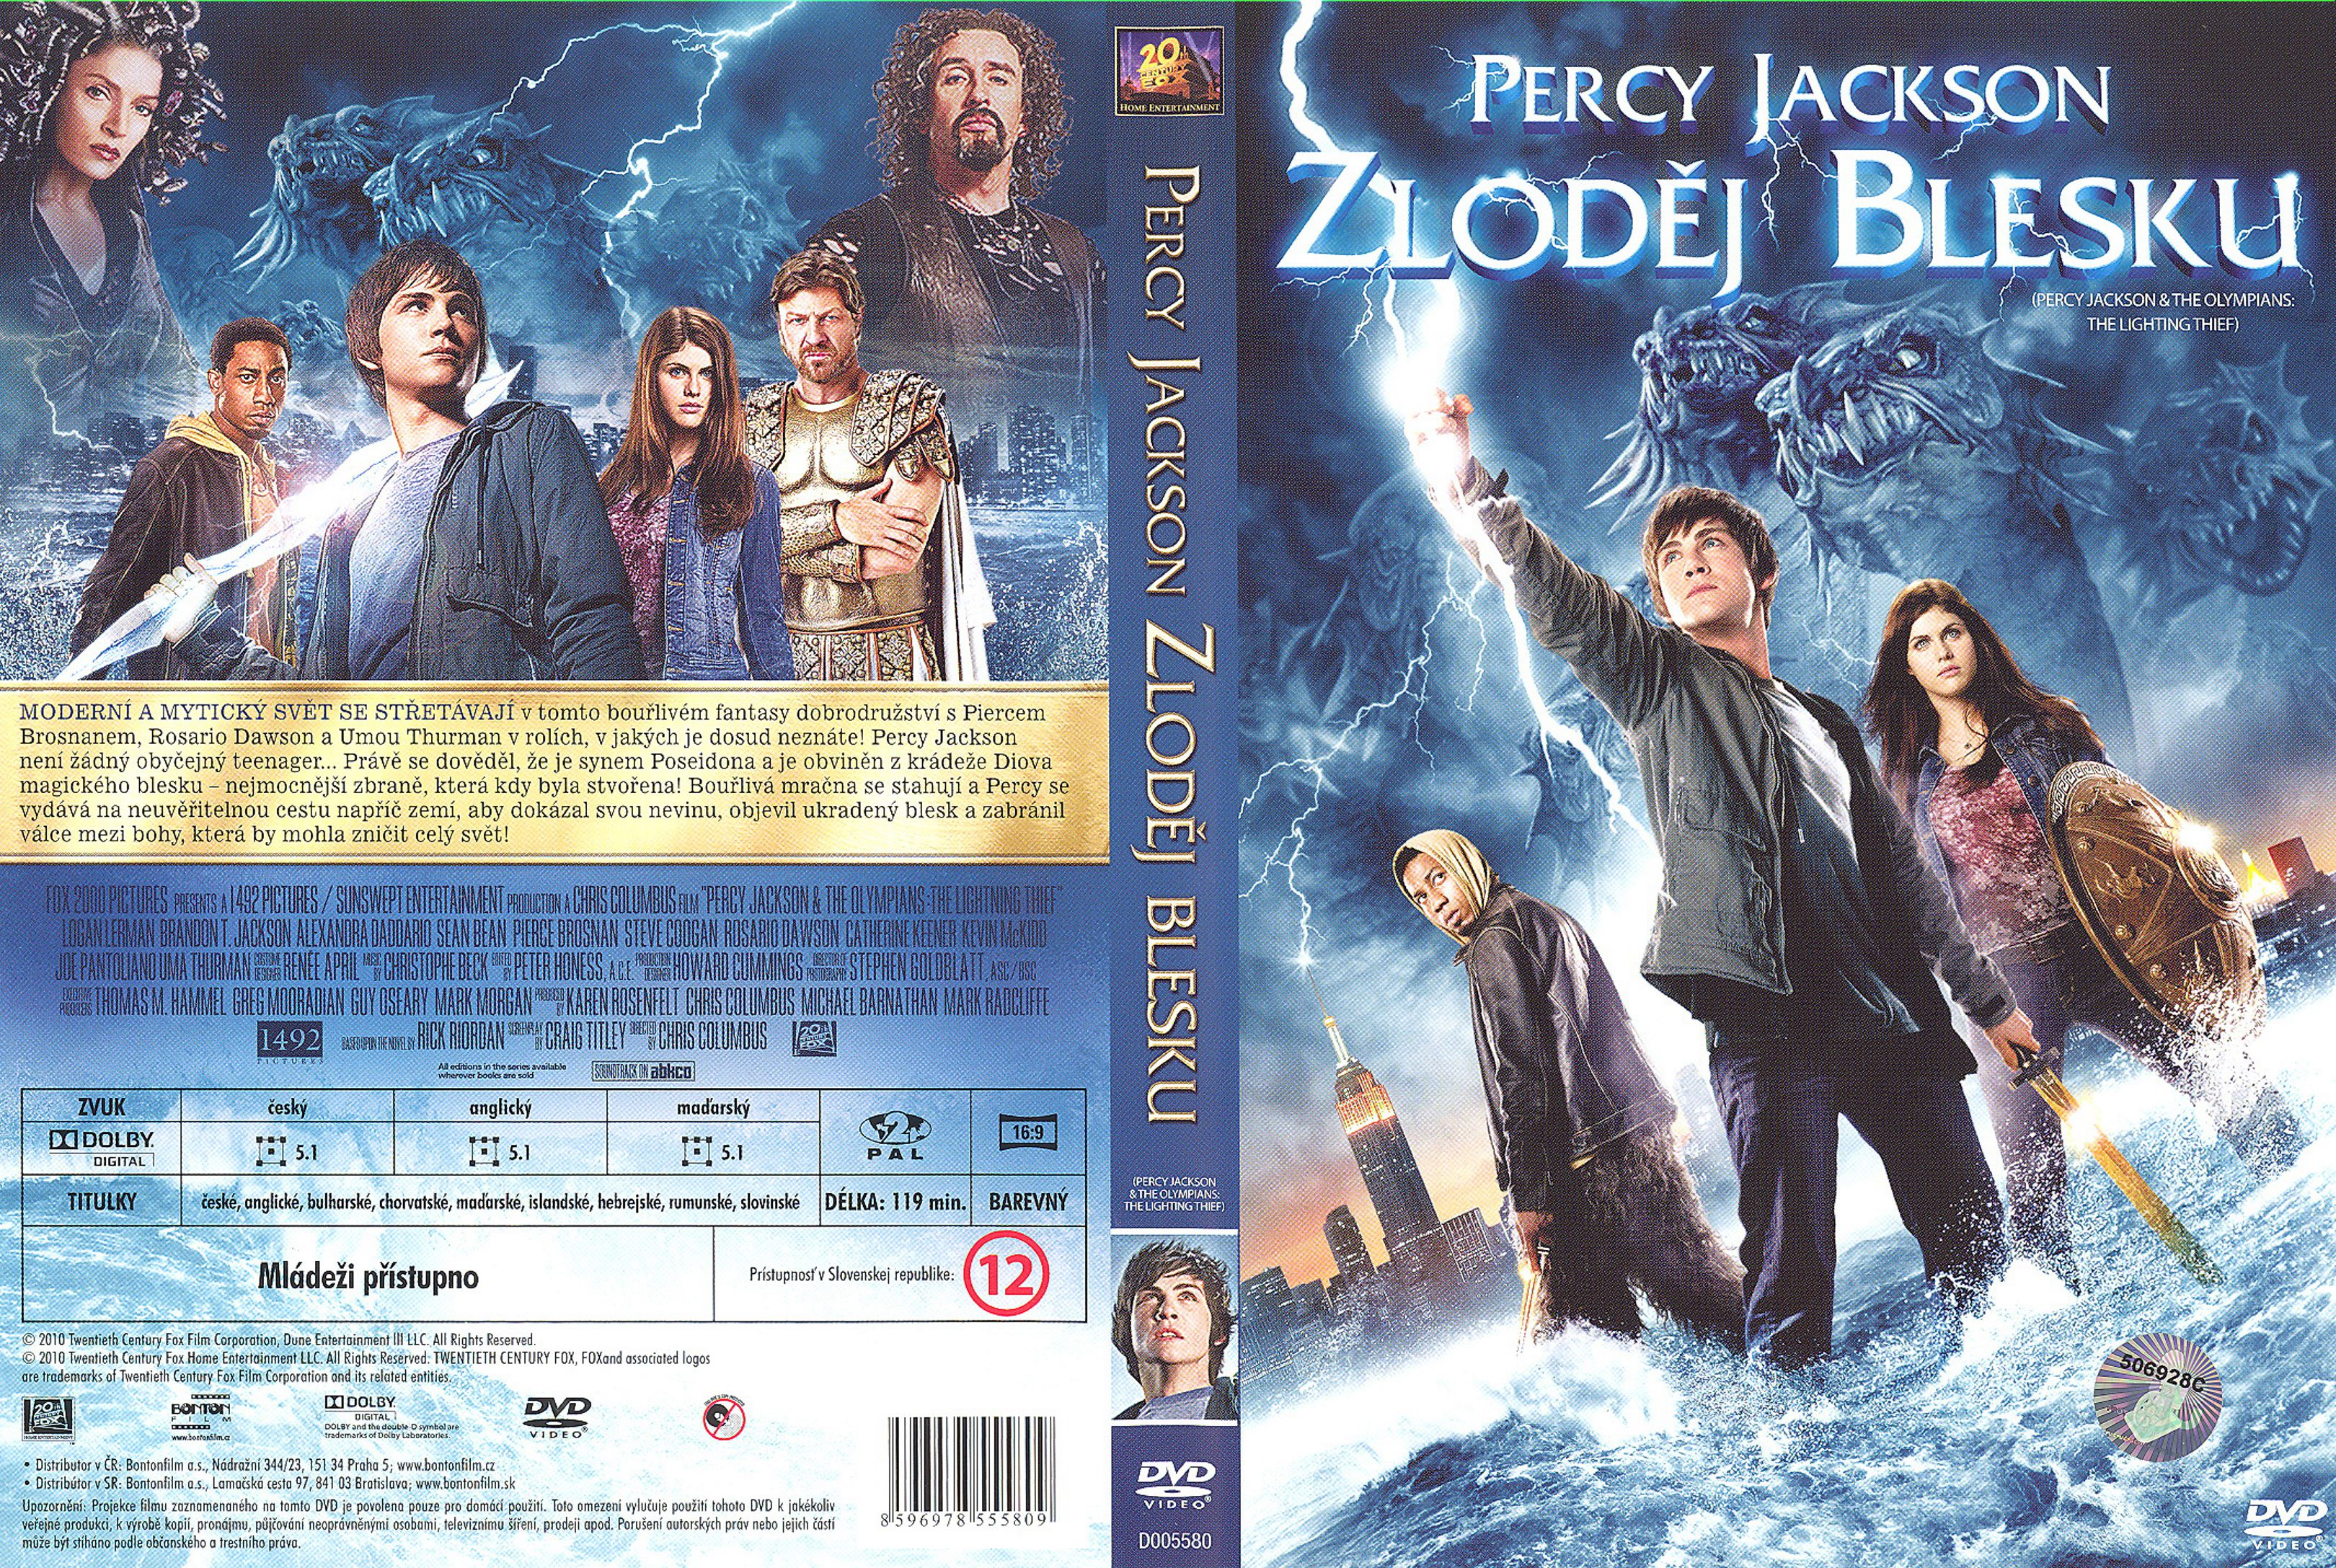 Covers Box Sk Percy Jackson And The Lightning Thief 2010 High Quality Dvd Blueray Movie